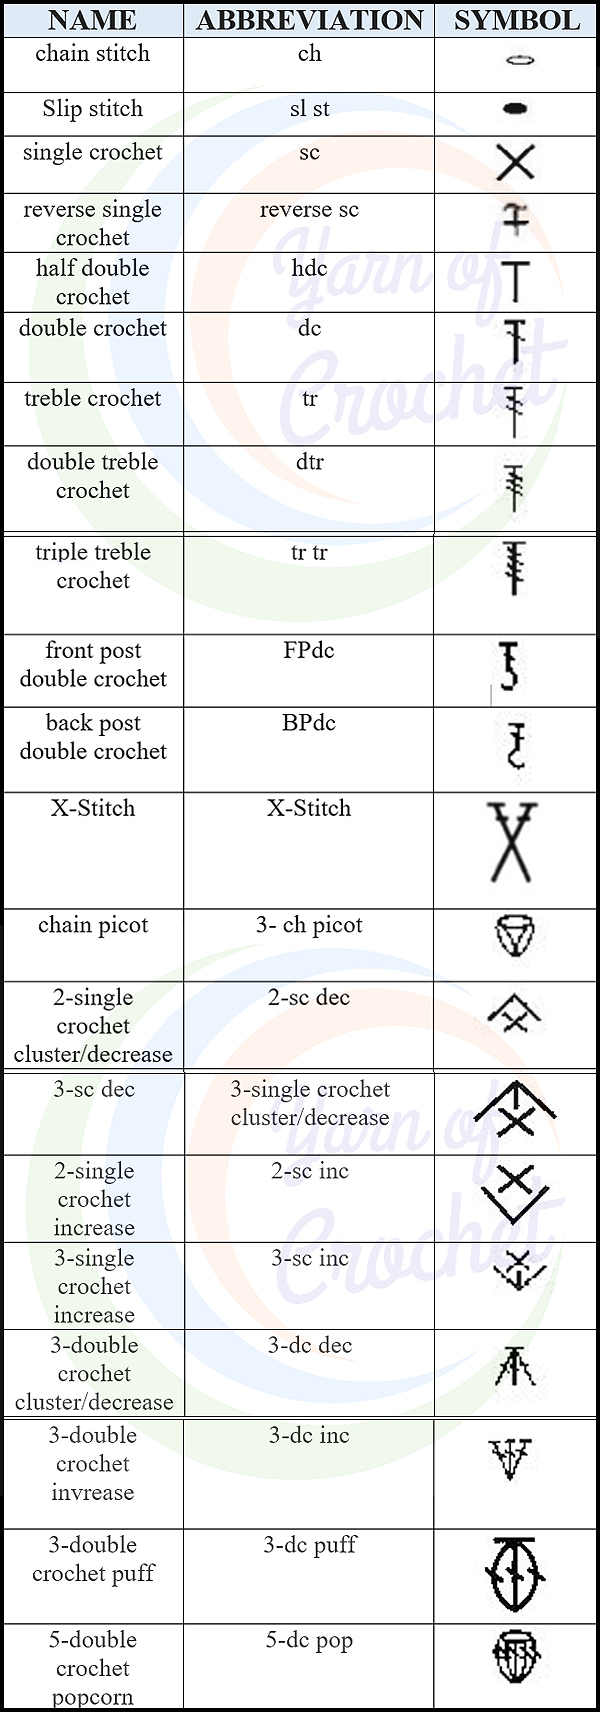 see a complete table with the most commonly used crochet stitches. With abbreviations and symbols to follow graphs and grade patterns in Yarn of Crochet